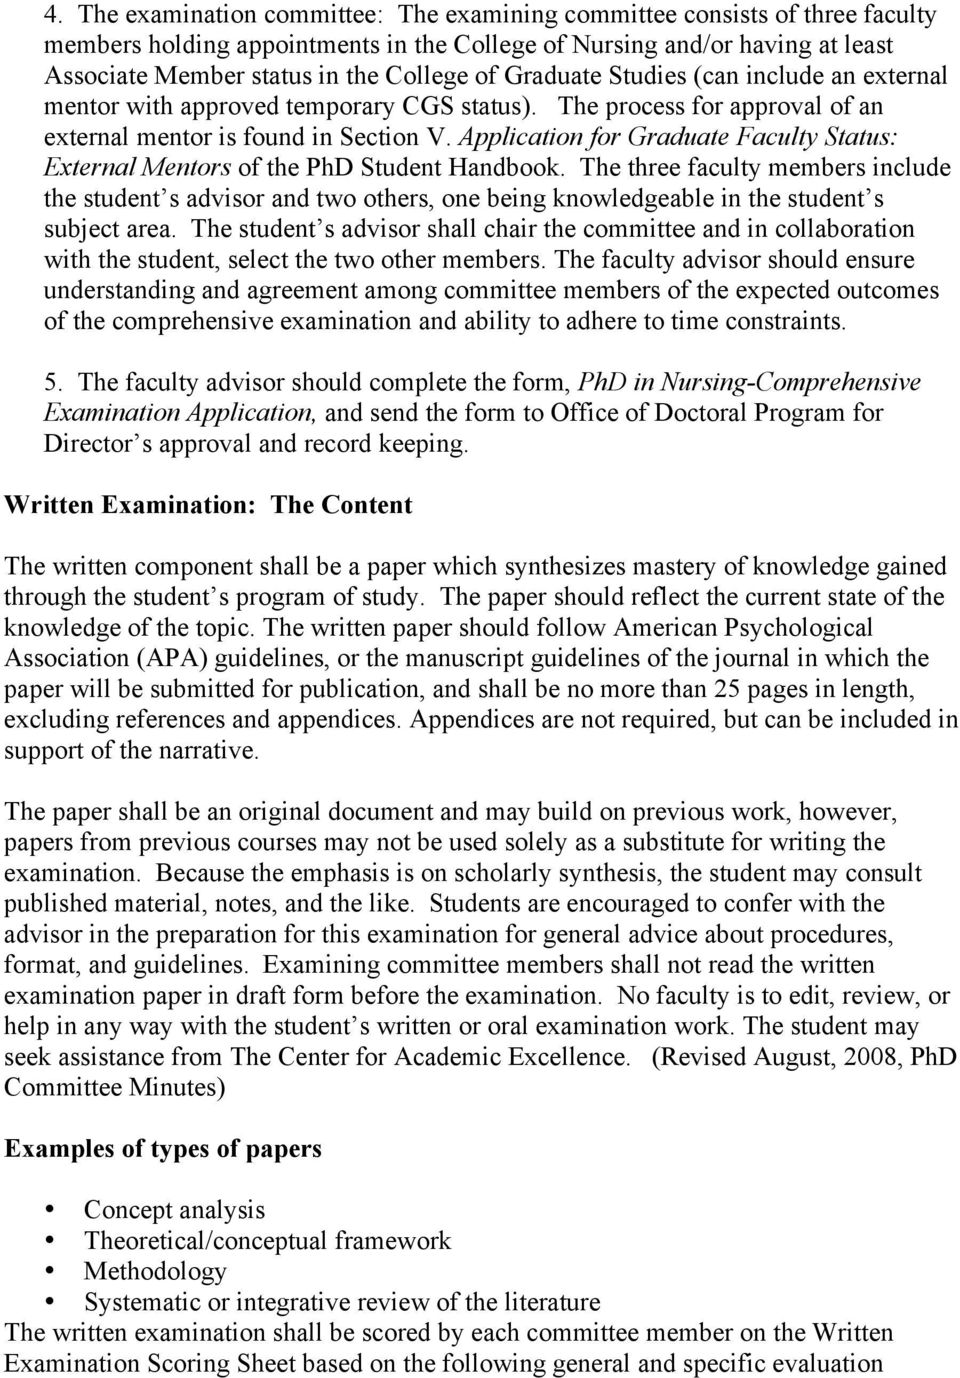 Application for Graduate Faculty Status: External Mentors of the PhD Student Handbook.